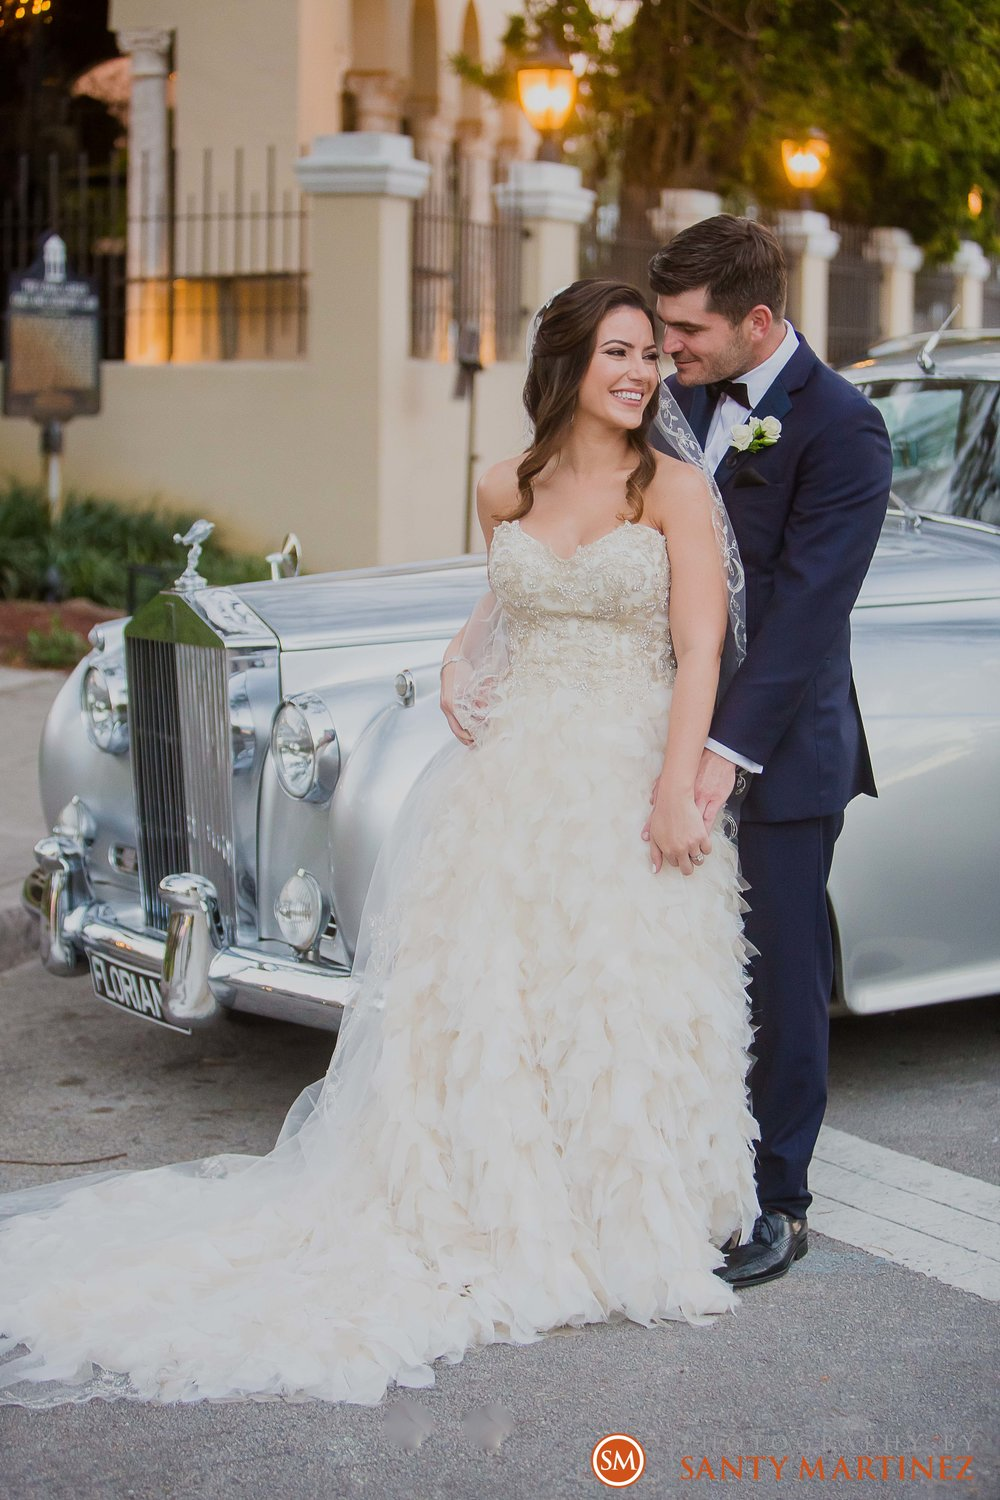 Wedding Coral Gables Country Club - Santy Martinez Photography-22.jpg